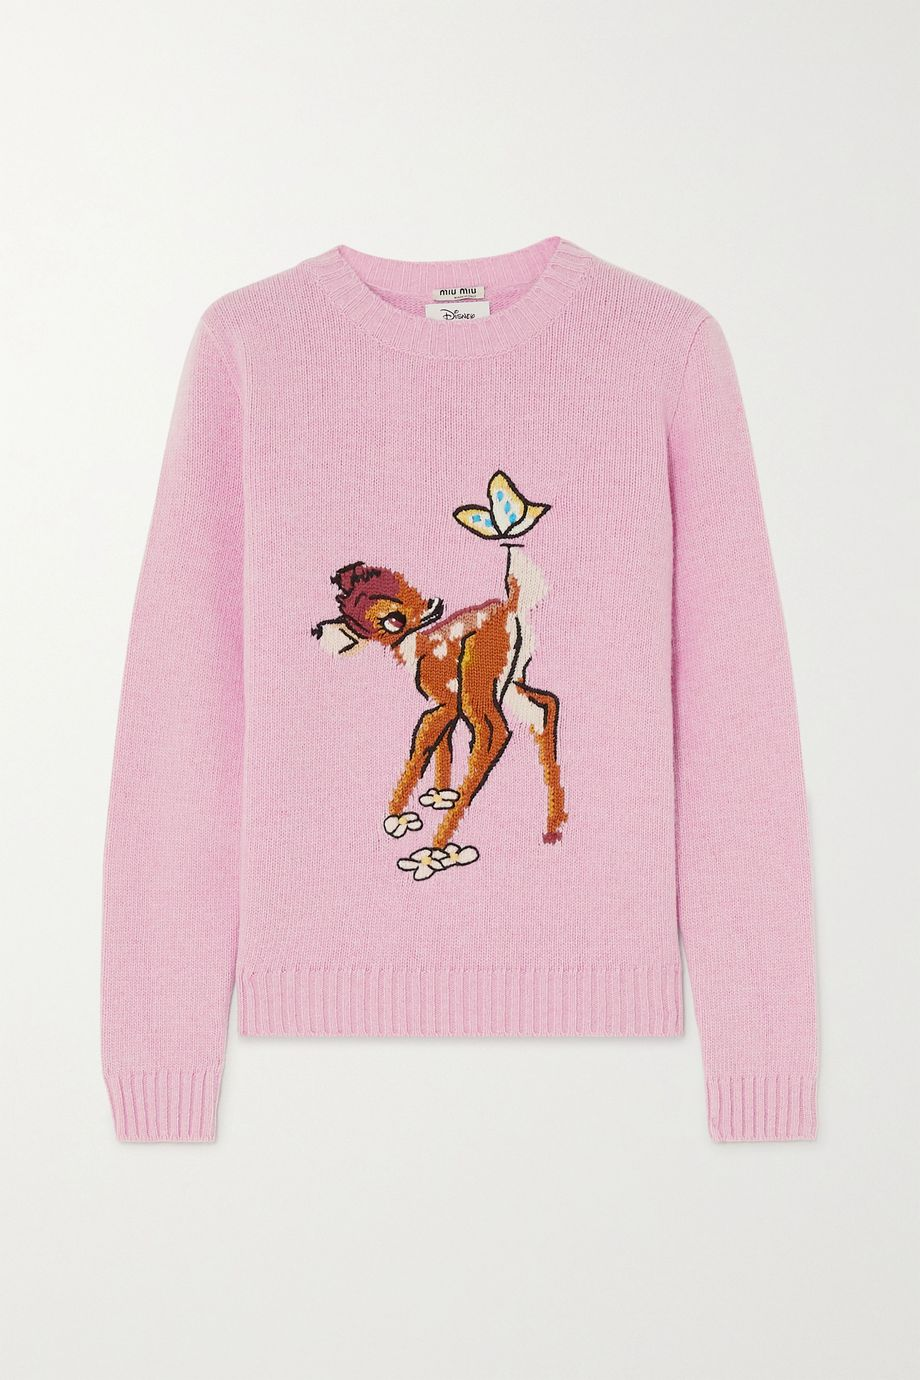 Miu Miu + Disney intarsia wool sweater